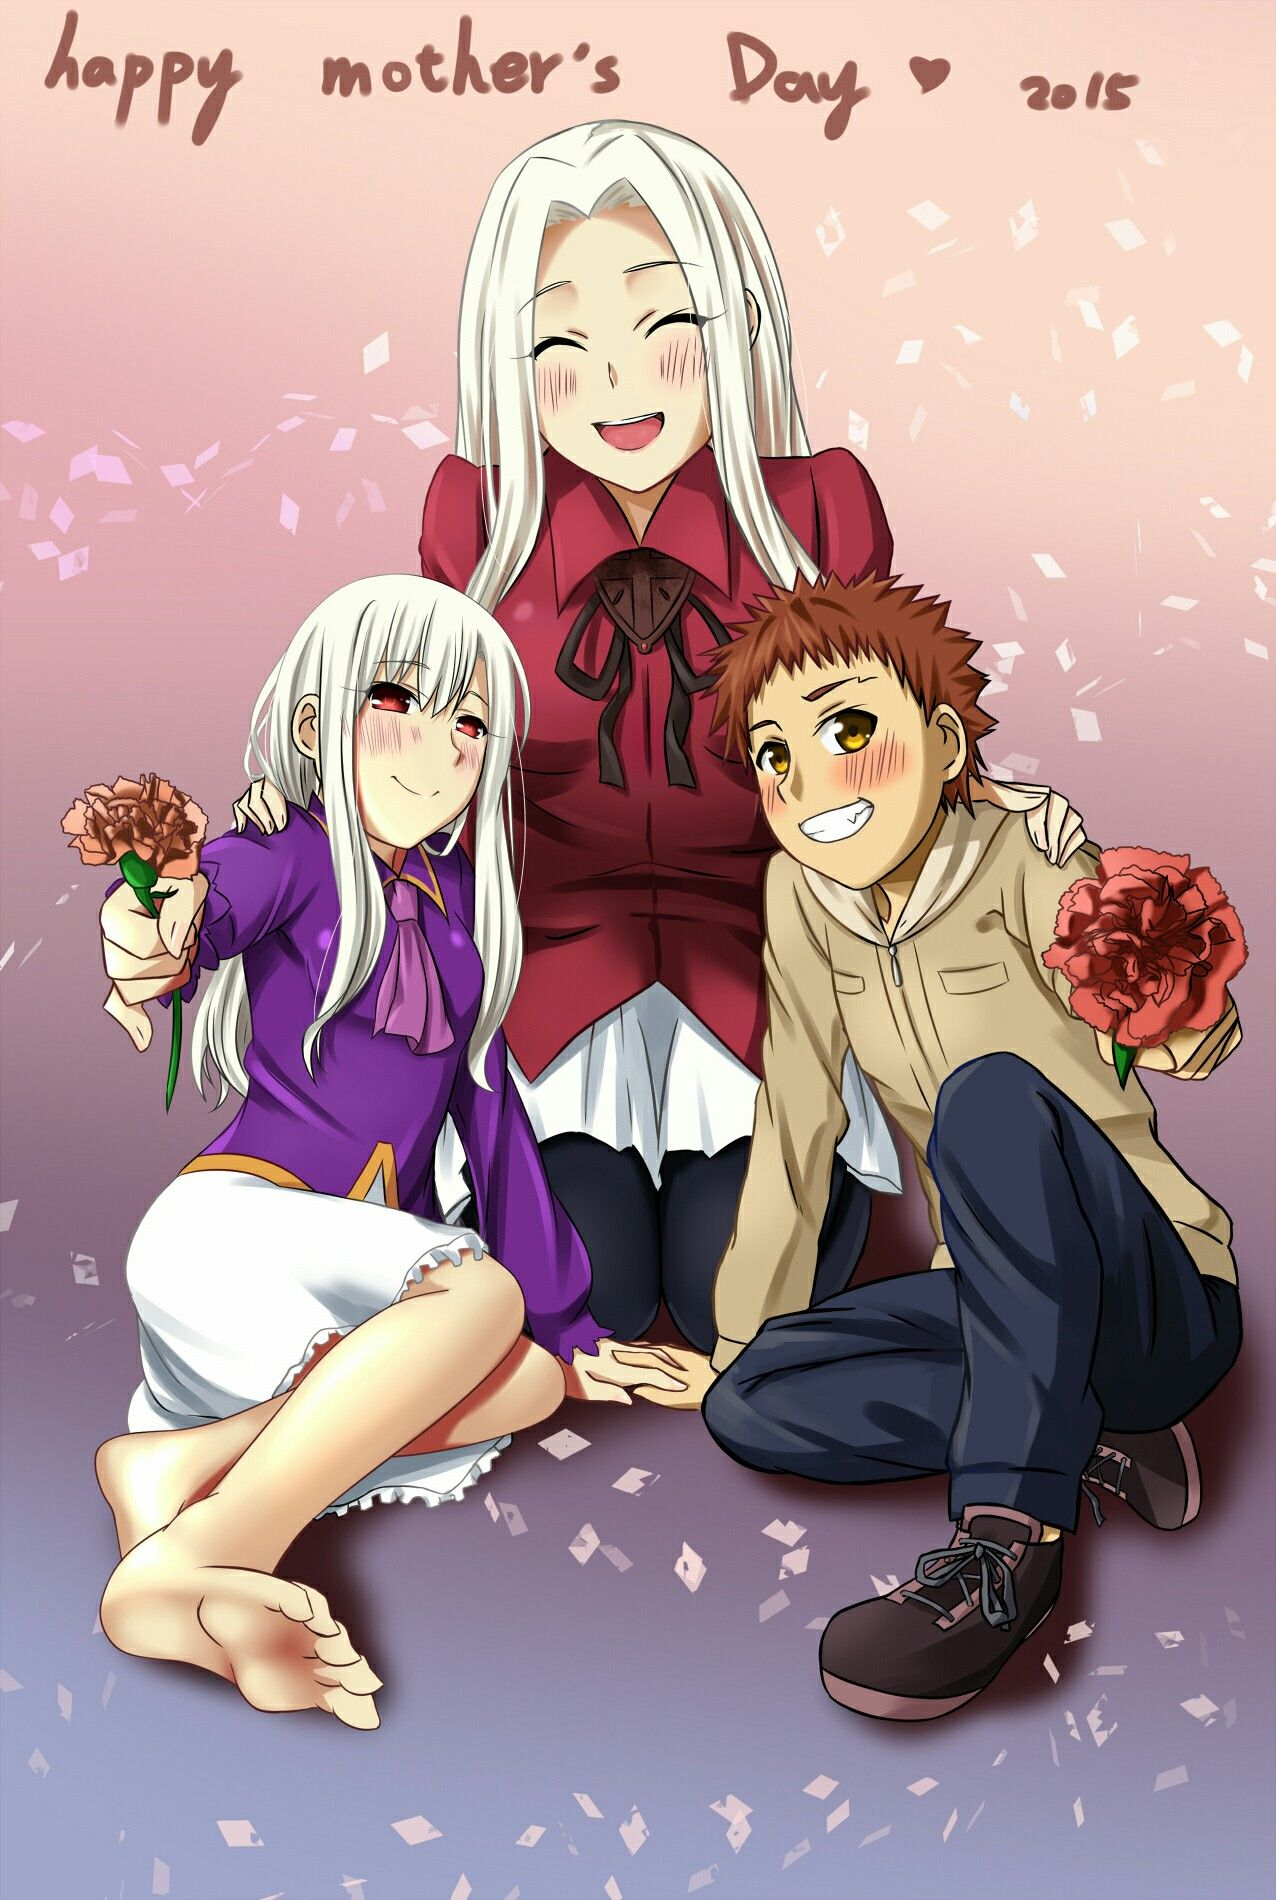 Pin By Kate On Fate Anime Fate Stay Night Anime Art